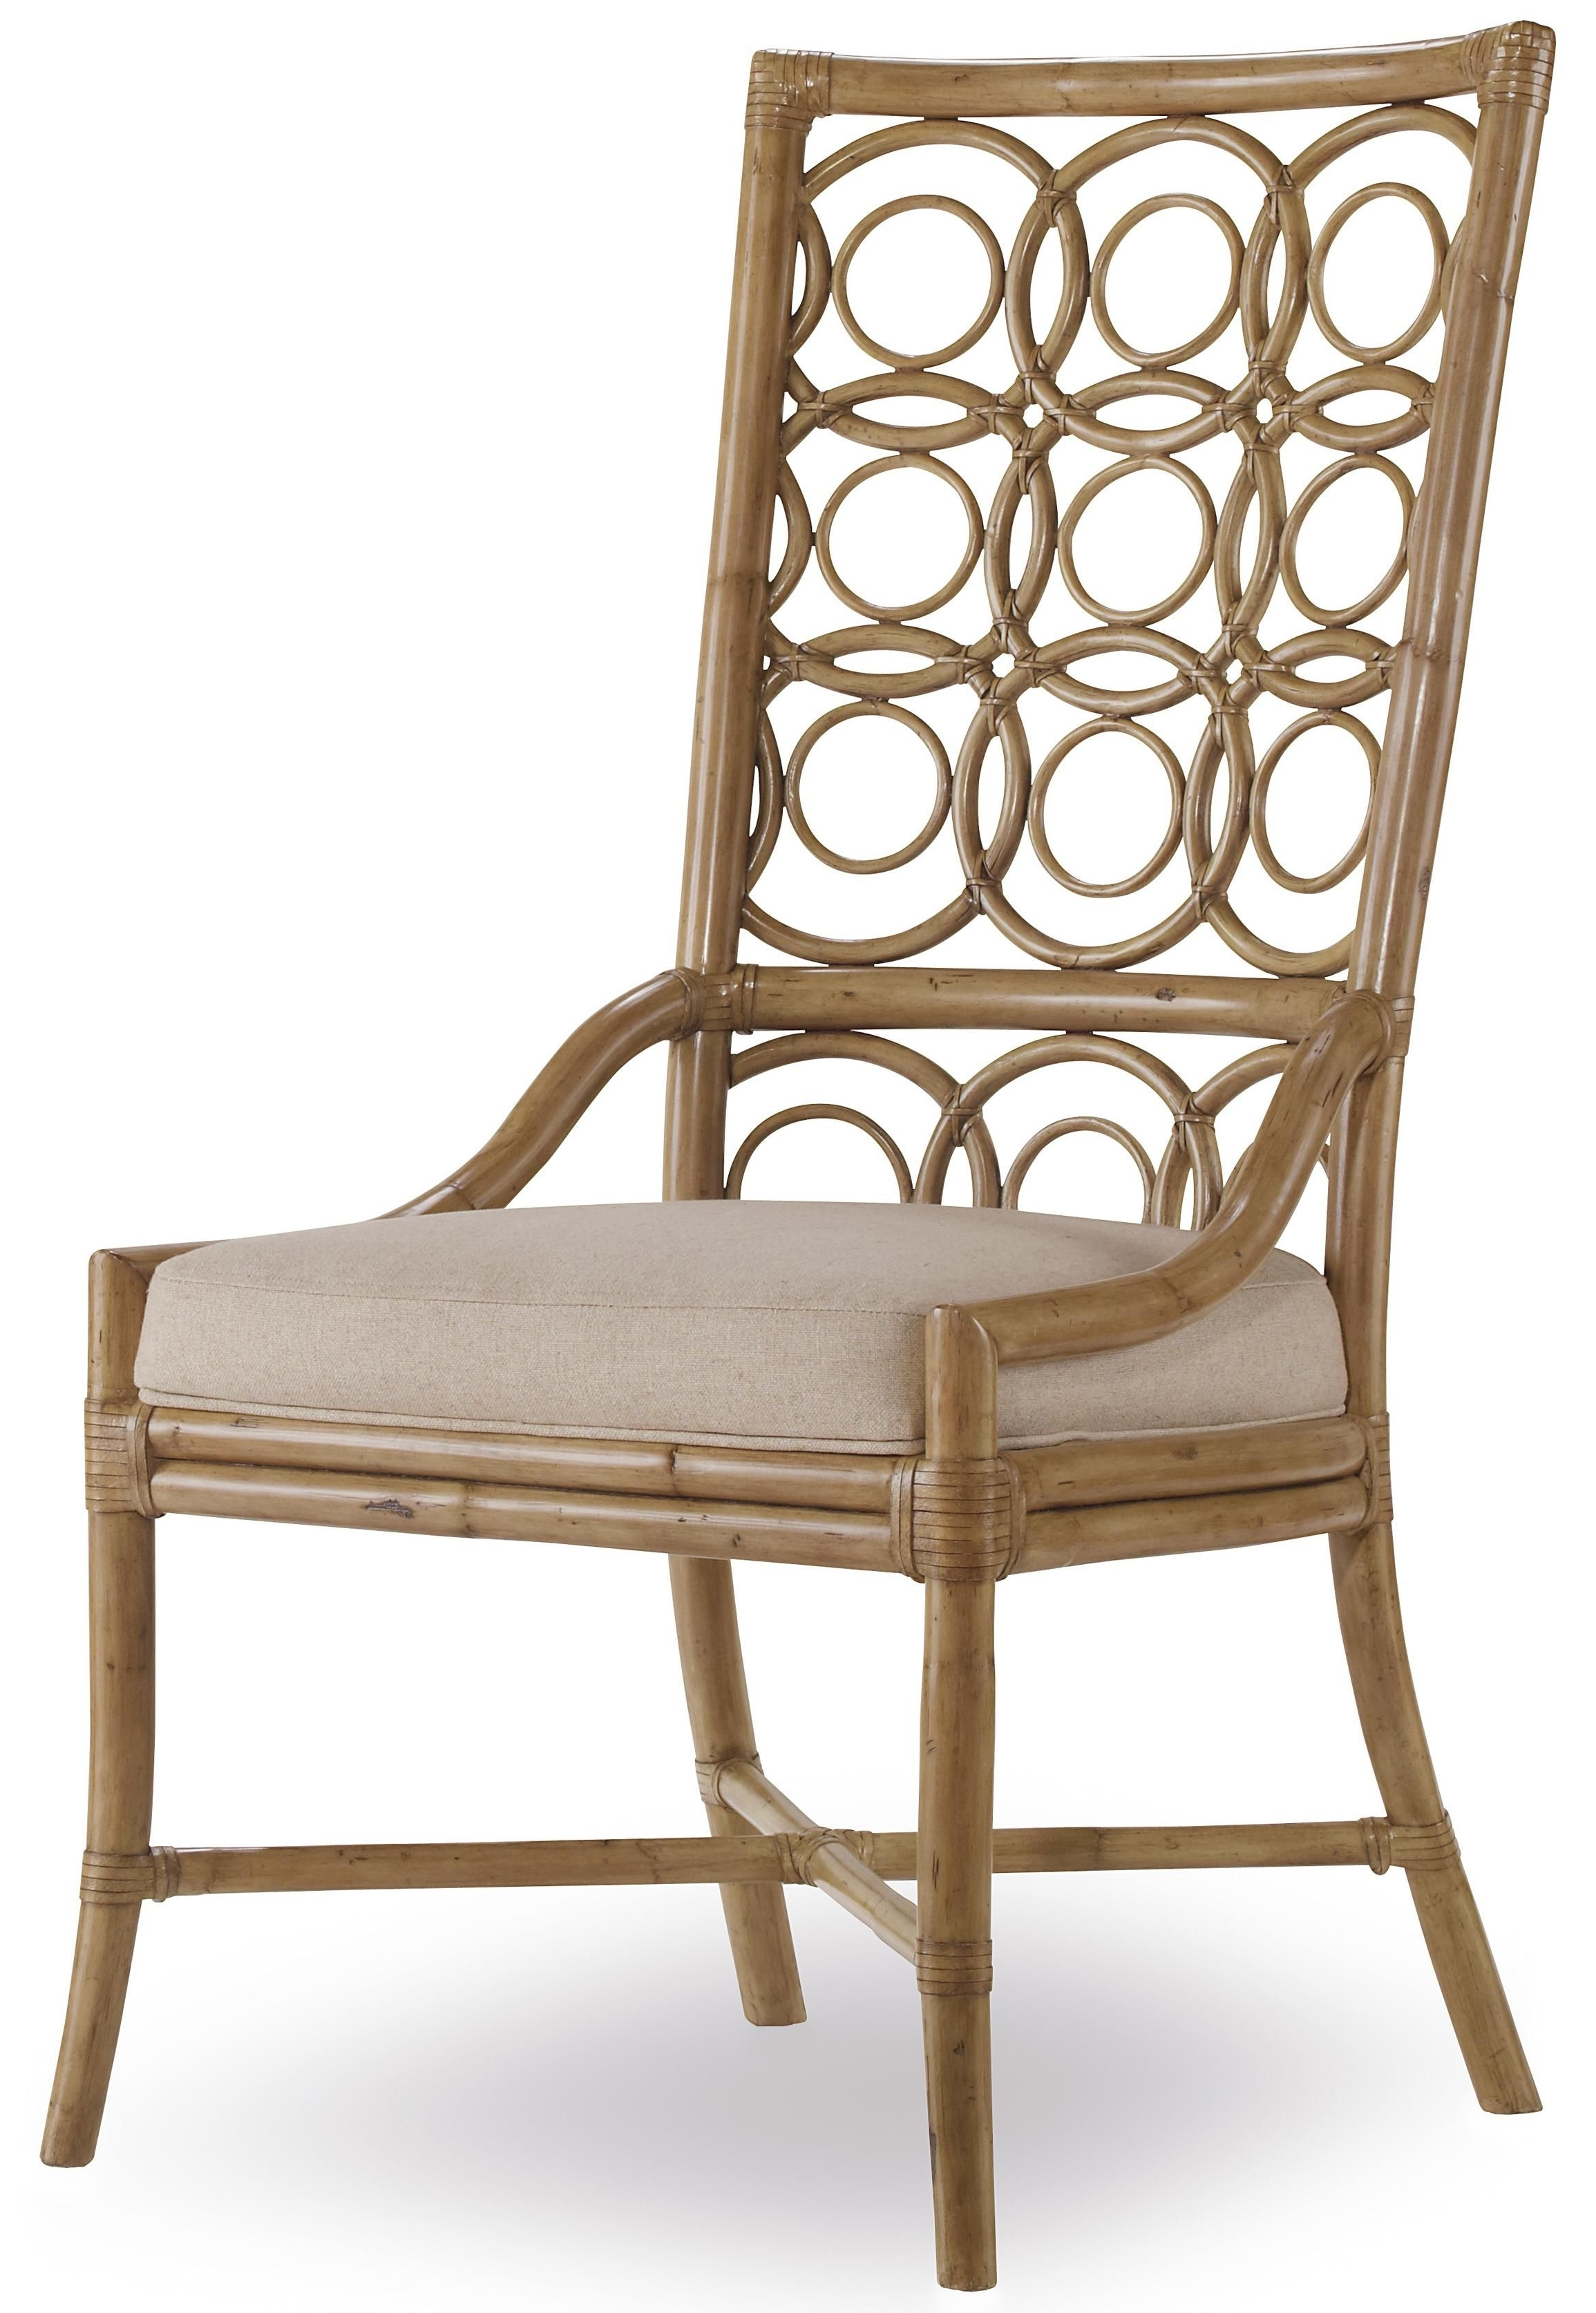 Famous Sanctuary Rattan Side Chairhooker Furniture Available At Stc Within Magnolia Home Entwine Rattan Arm Chairs (View 2 of 20)